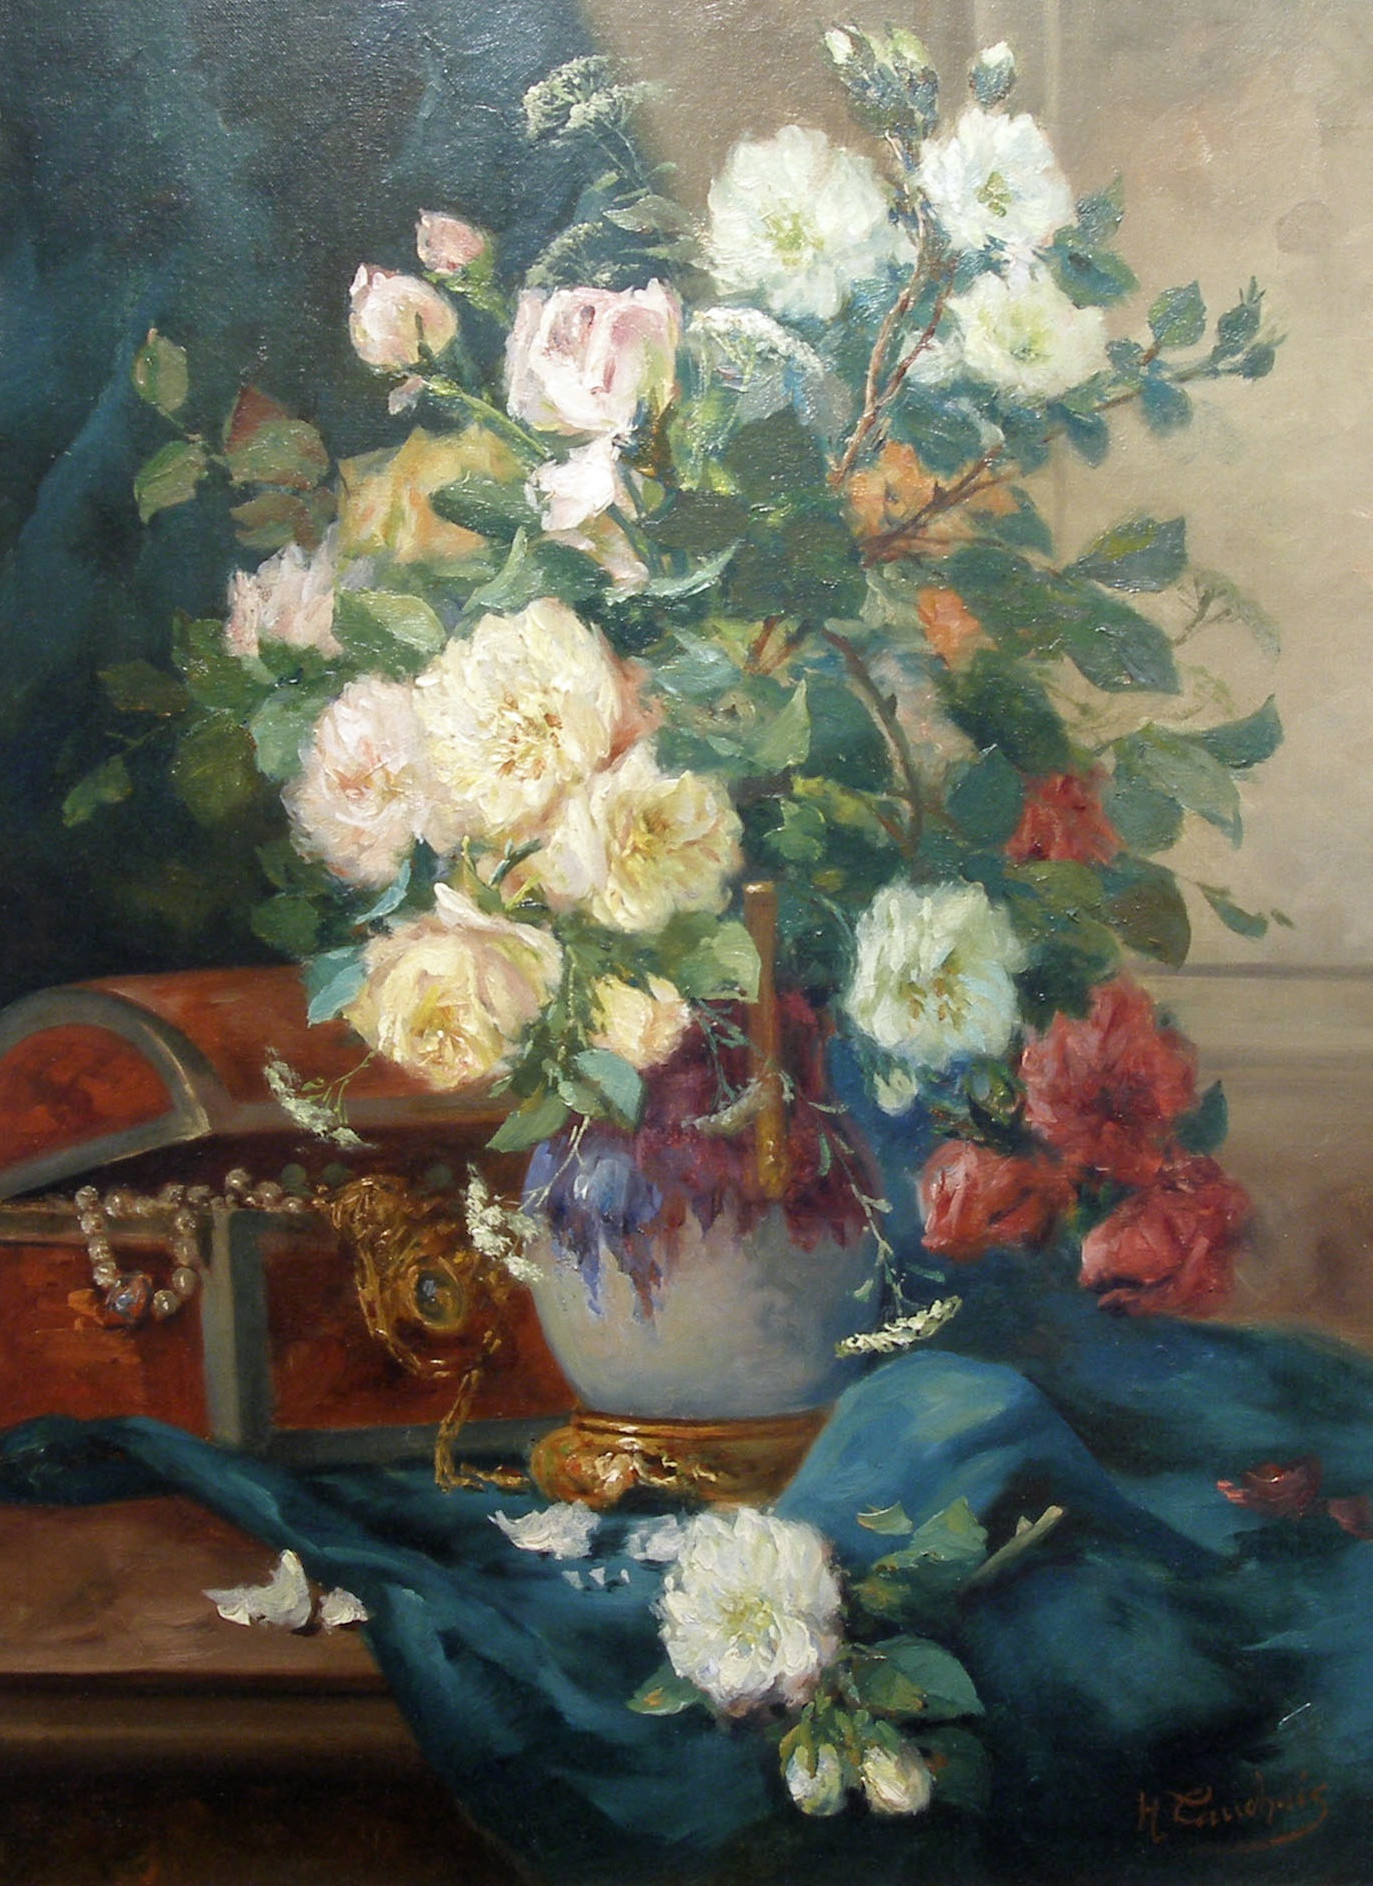 oil paintings of flowers in a vase of eugene henri cauchois roses in a lustre vase julian simon fine art throughout eugene henri cauchois roses in a lustre vase